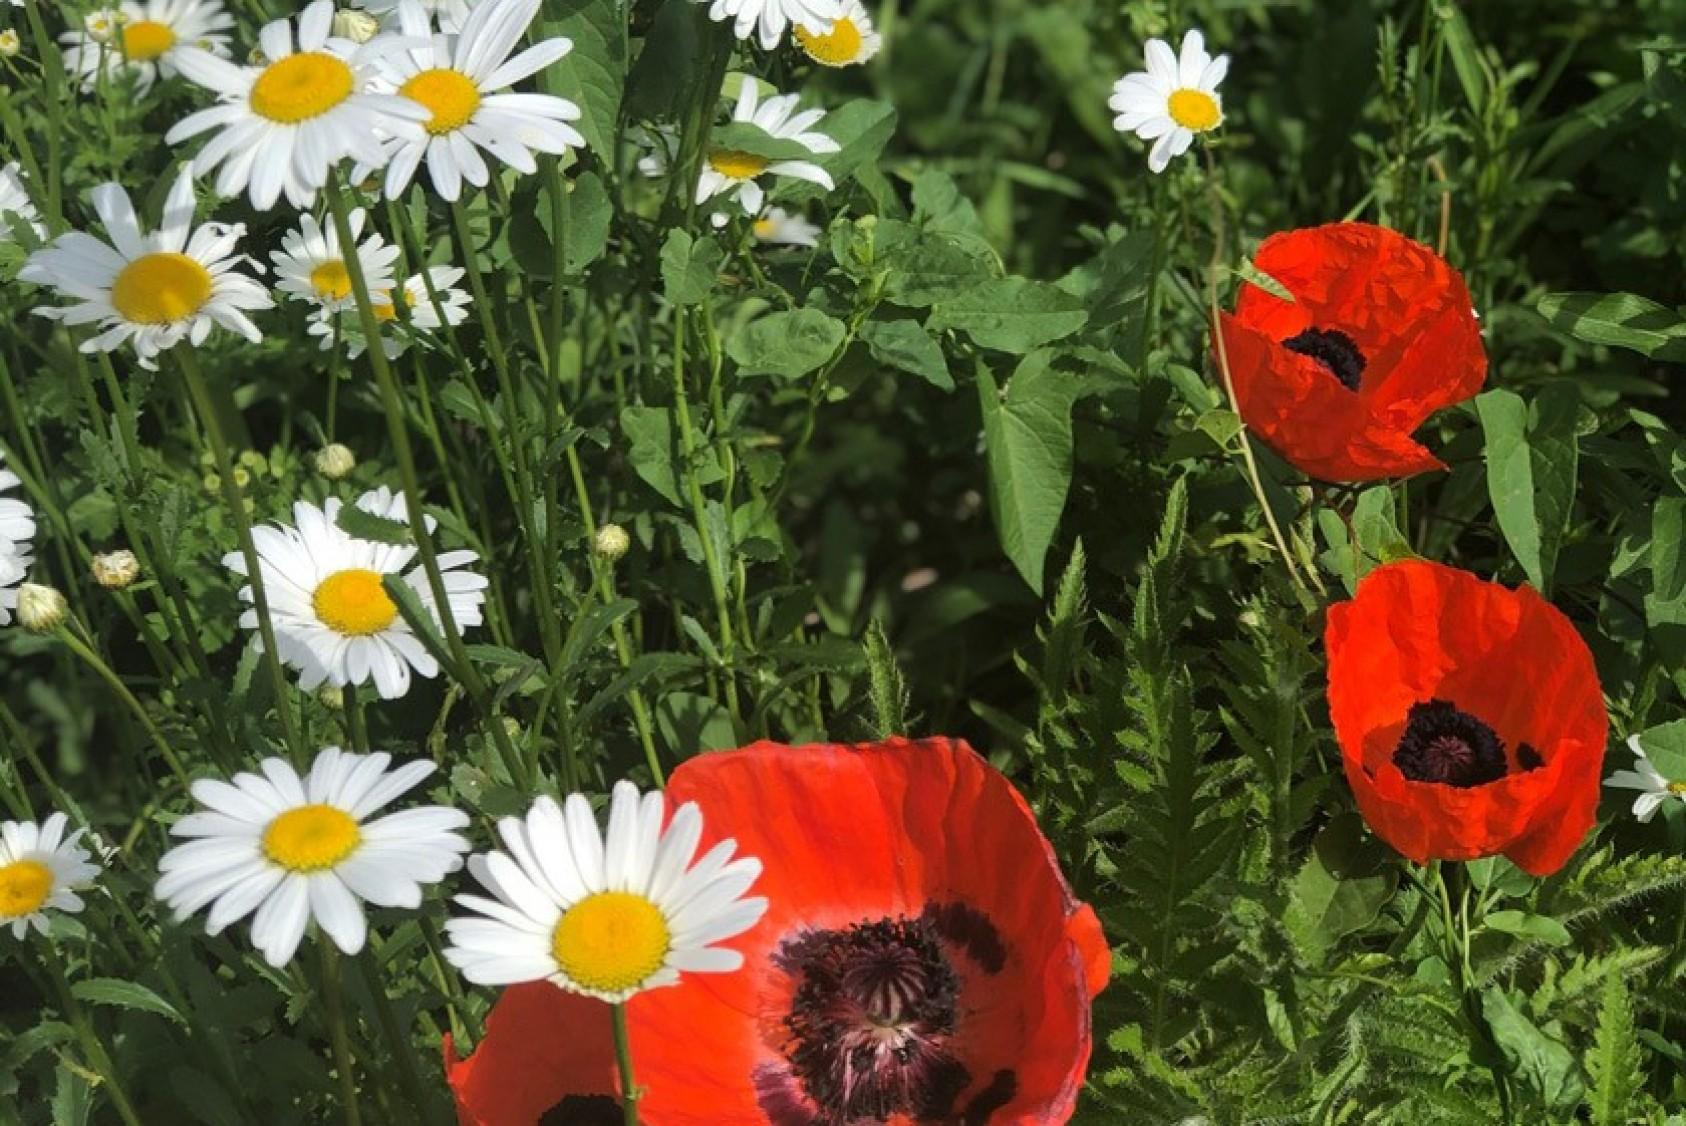 Half of Blake's garden space is designated for pollinators and beneficial insects, including daisies and poppies.